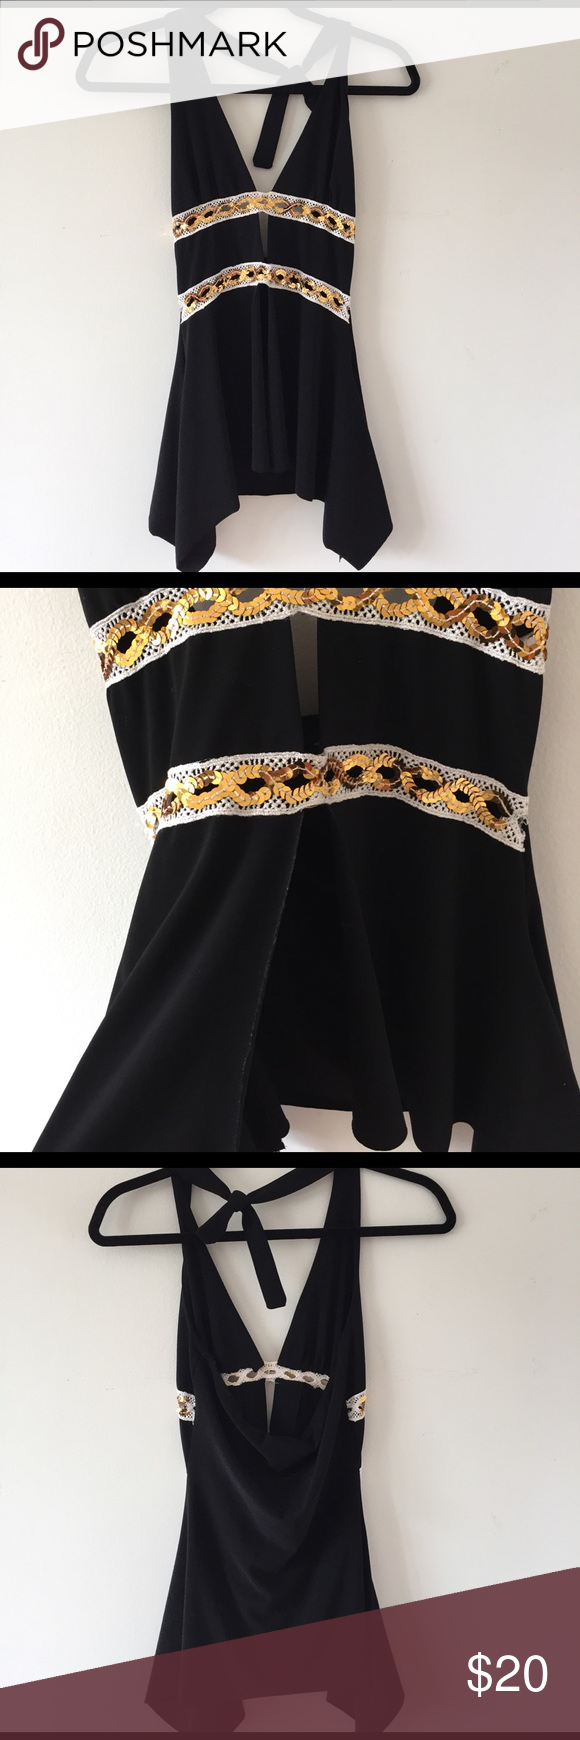 Dressy Halter Top Black halter top with gold sequins. There is slit in the front. Size medium. Made with 96% polyester. Bundle for a discount. Tops